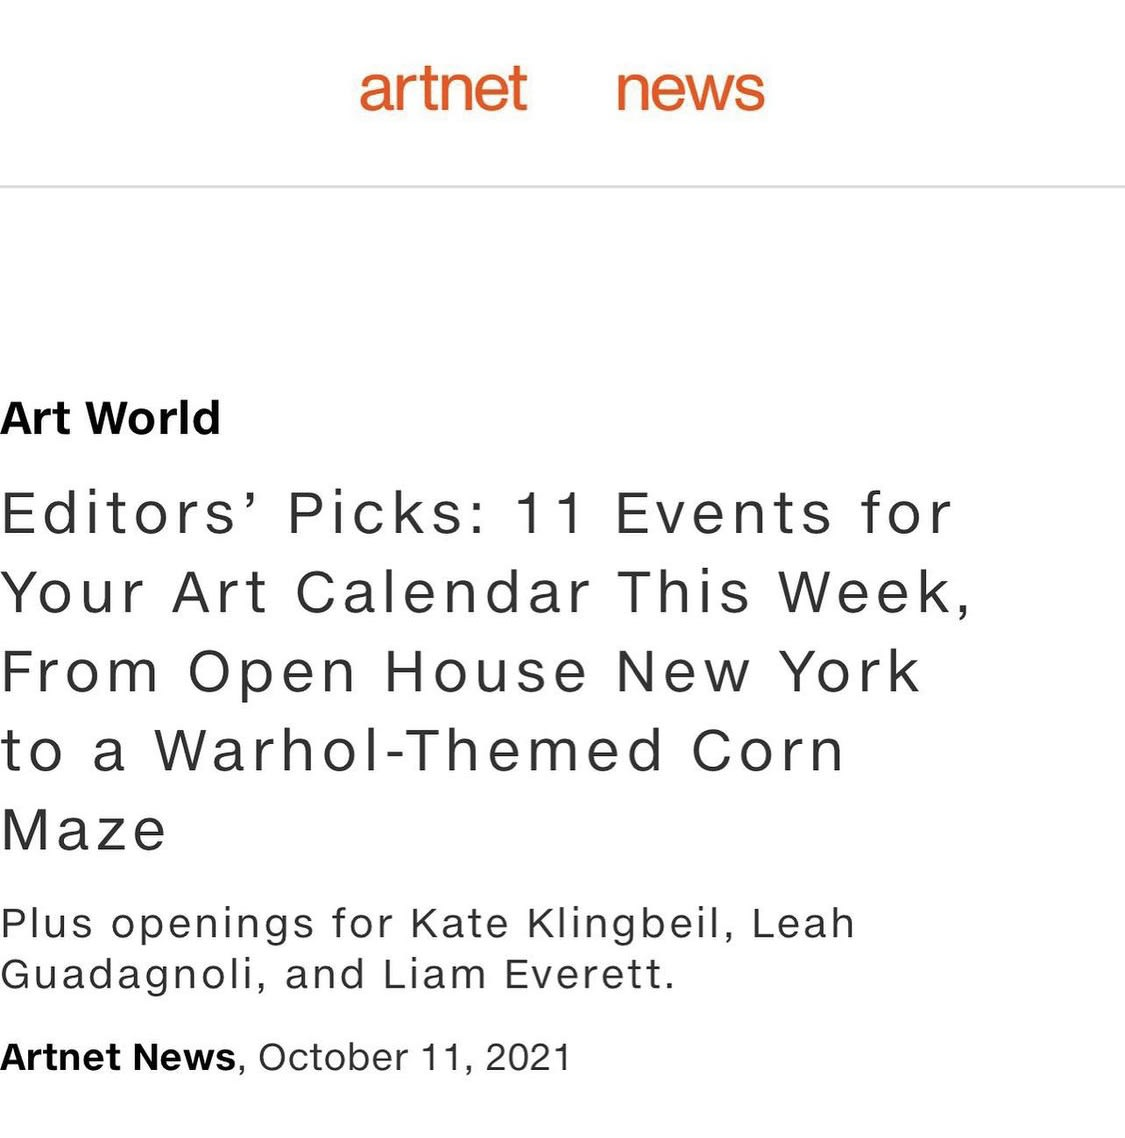 Editors' Picks: 11 Events for Your Art Calendar This Week, From Open House New York to a Warhol-Themed Corn Maze